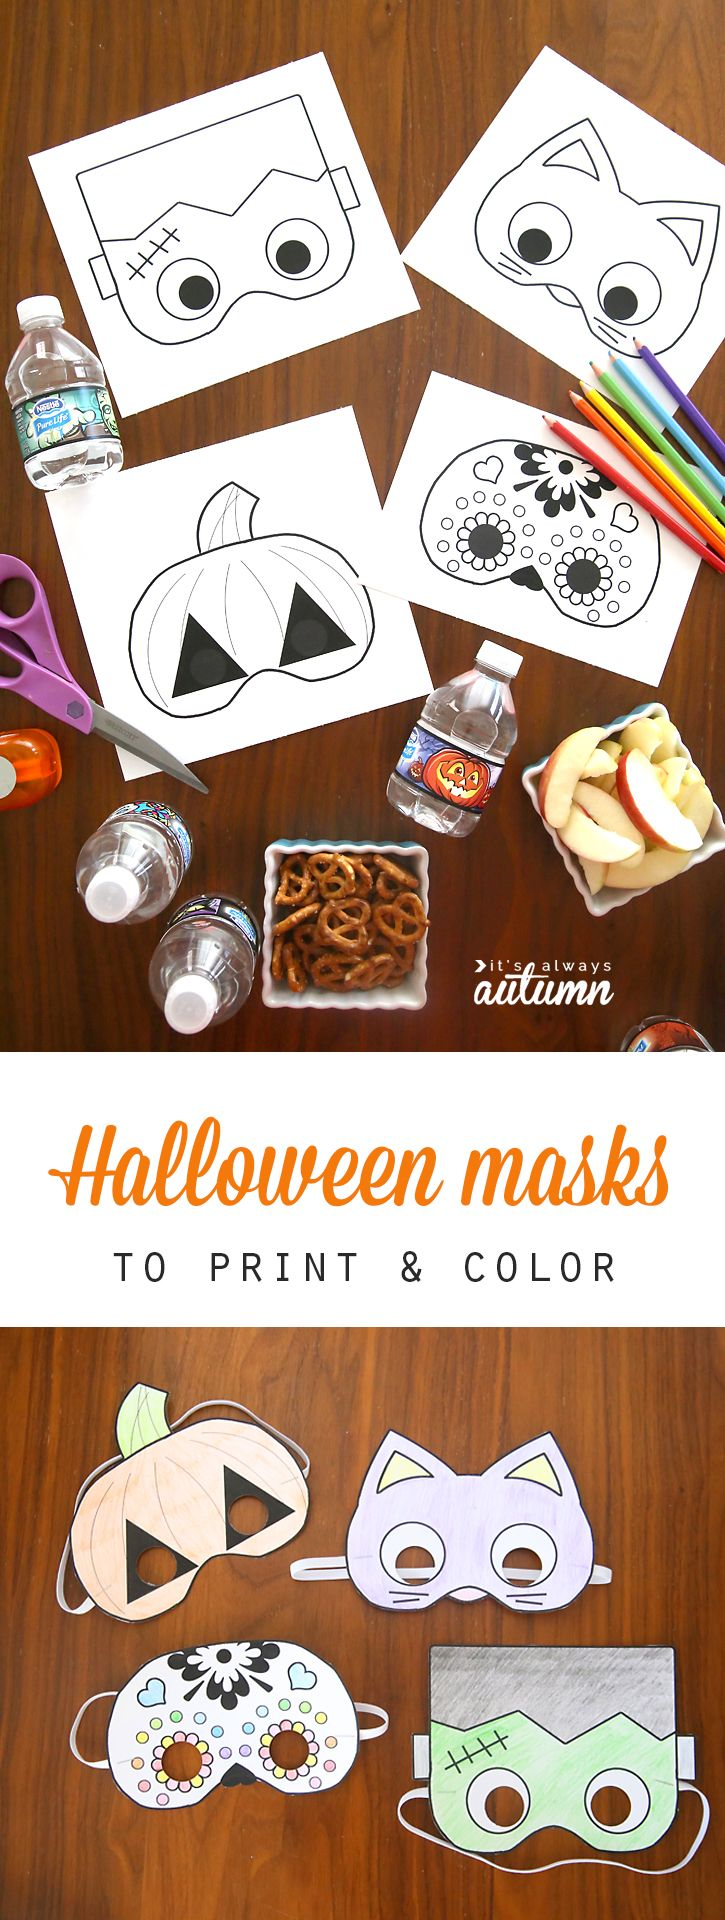 halloween masks to print and color classroom halloween partyfun halloween craftshalloween bottlespreschool - Preschool Halloween Crafts Ideas